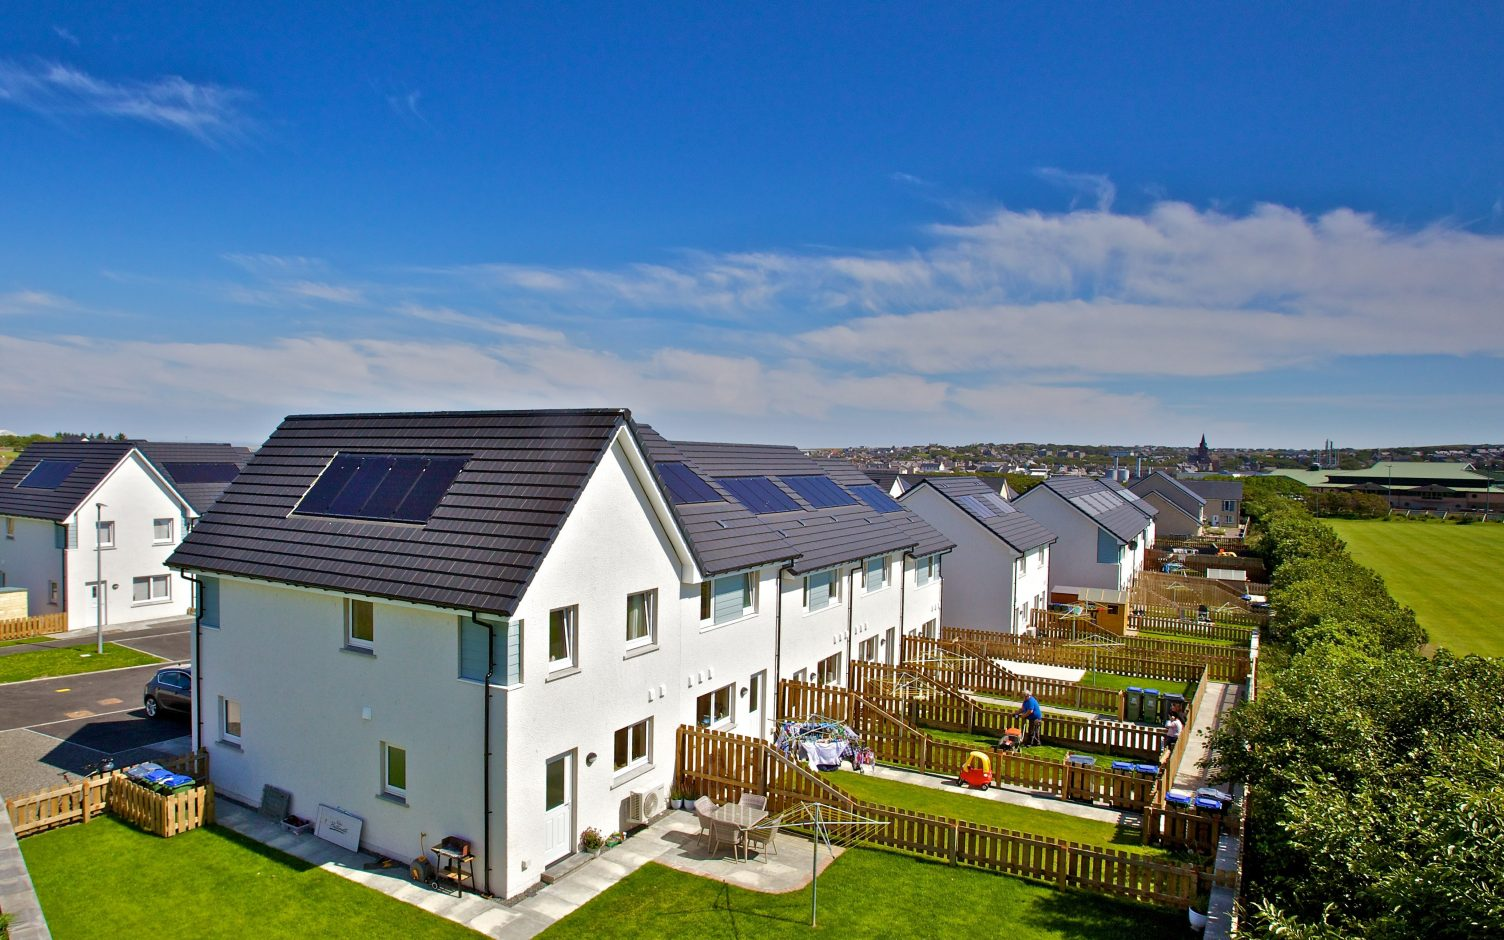 SMS launches a new solar offering for social housing using its FlexiGrid tech. Image: SMS.